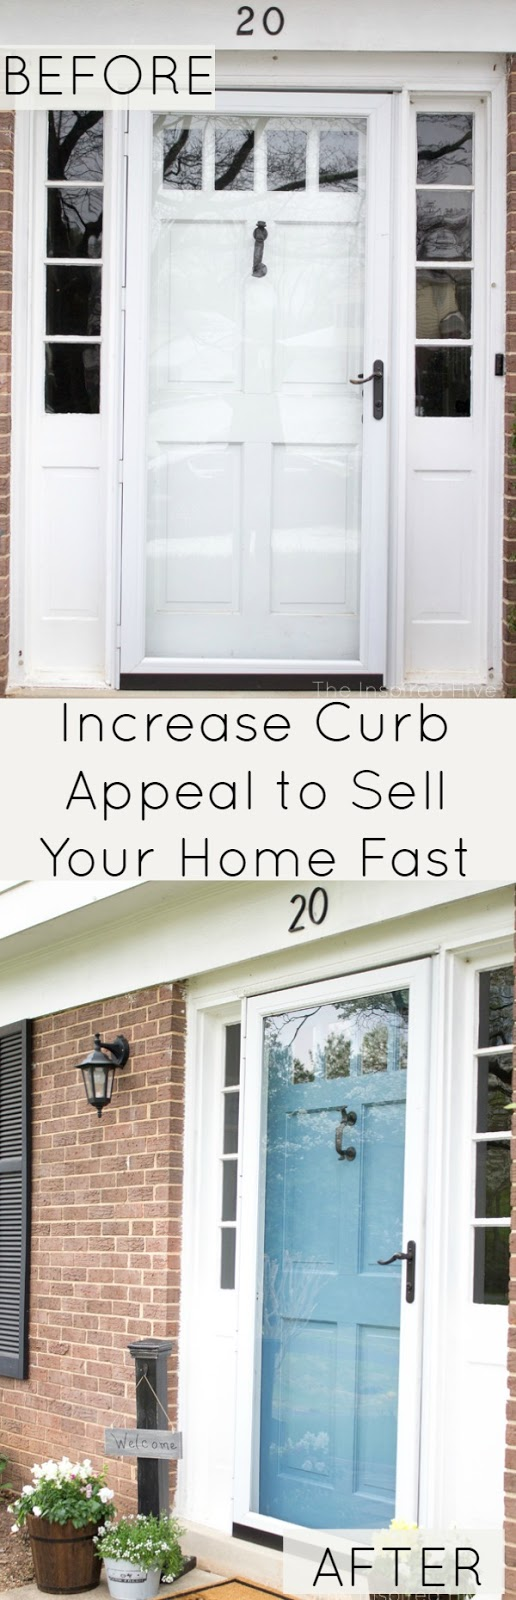 Increase Your Curb Appeal To Sell Your Home The Inspired Hive